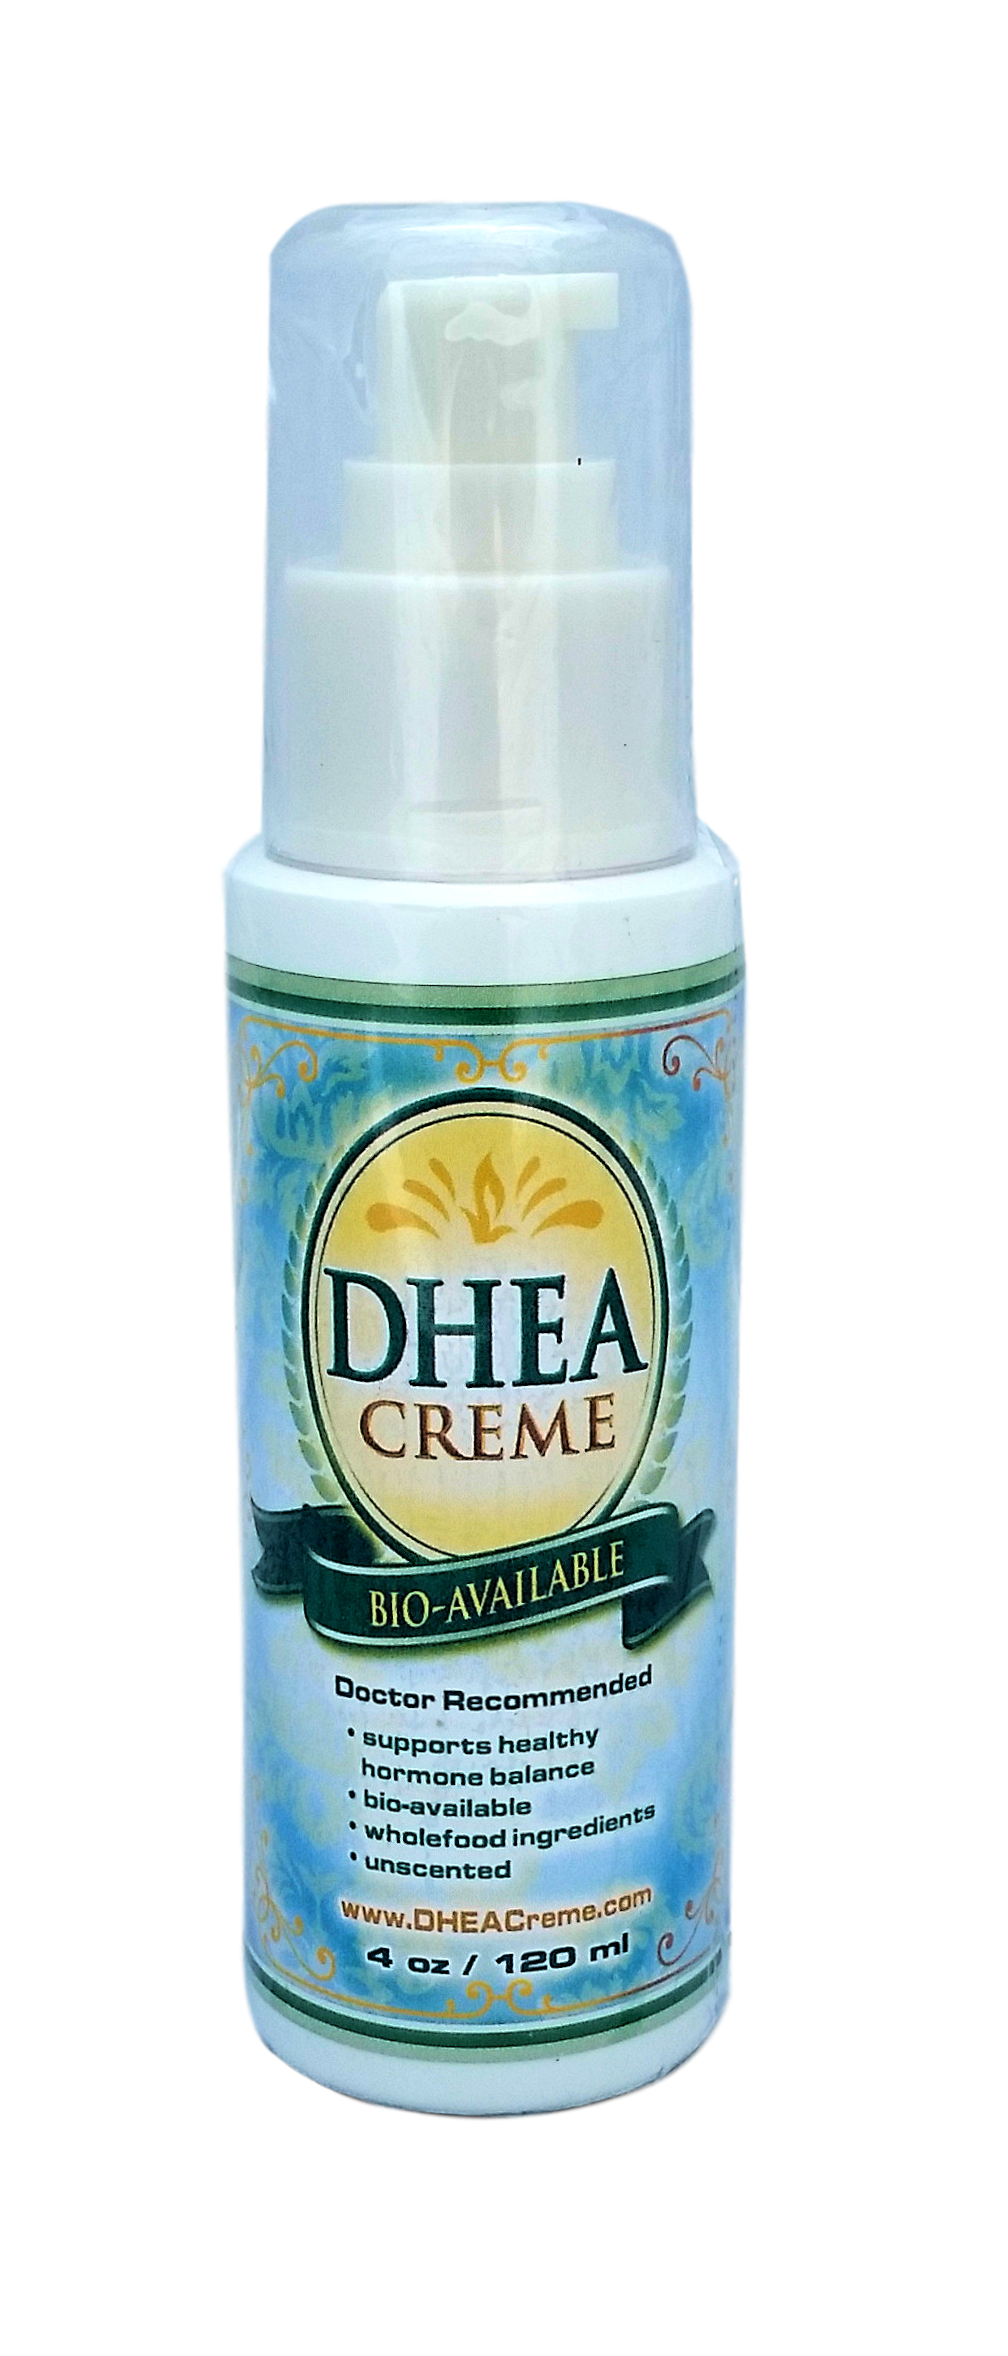 Unscented cream produced during sex